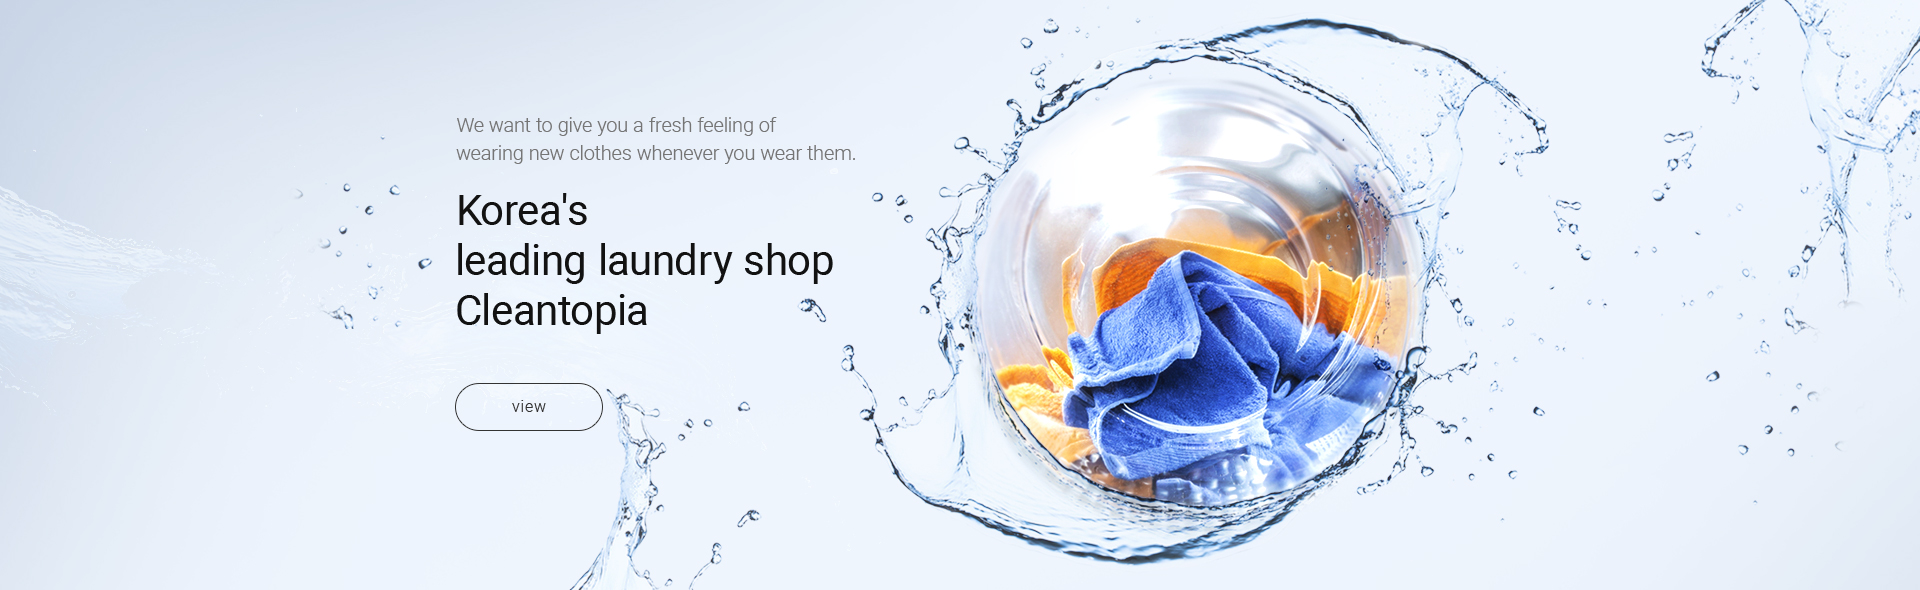 We want to give you a fresh feeling of wearing new clothes whenever you wear them. Korea's leading laundry shop Cleantopia